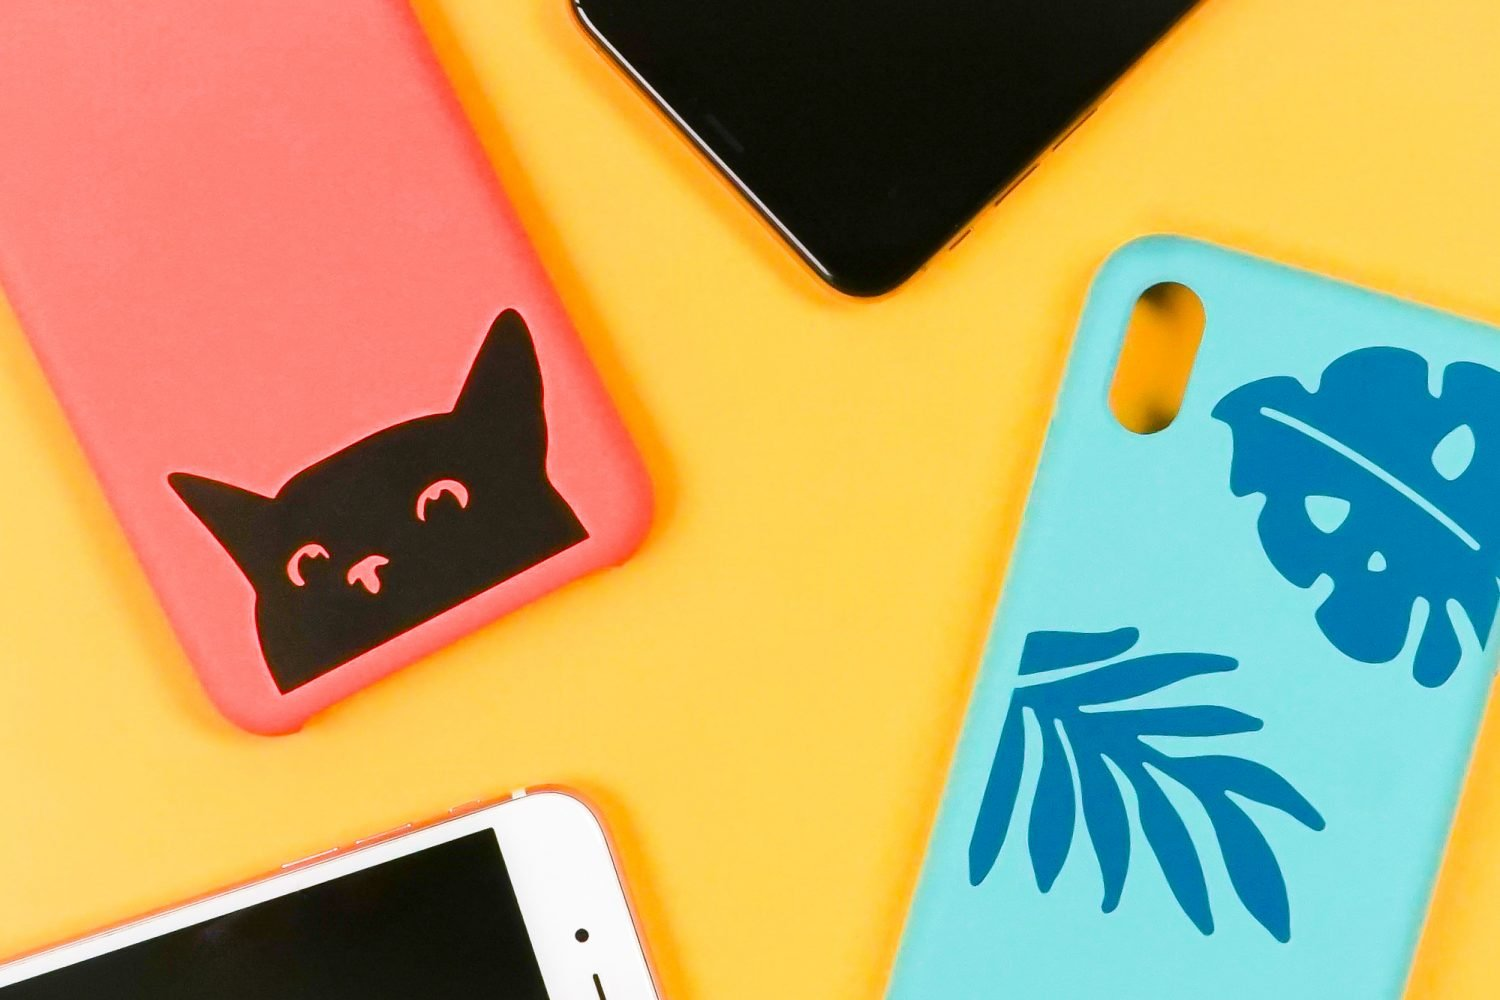 Phone cases made with a Cricut on a yellow background